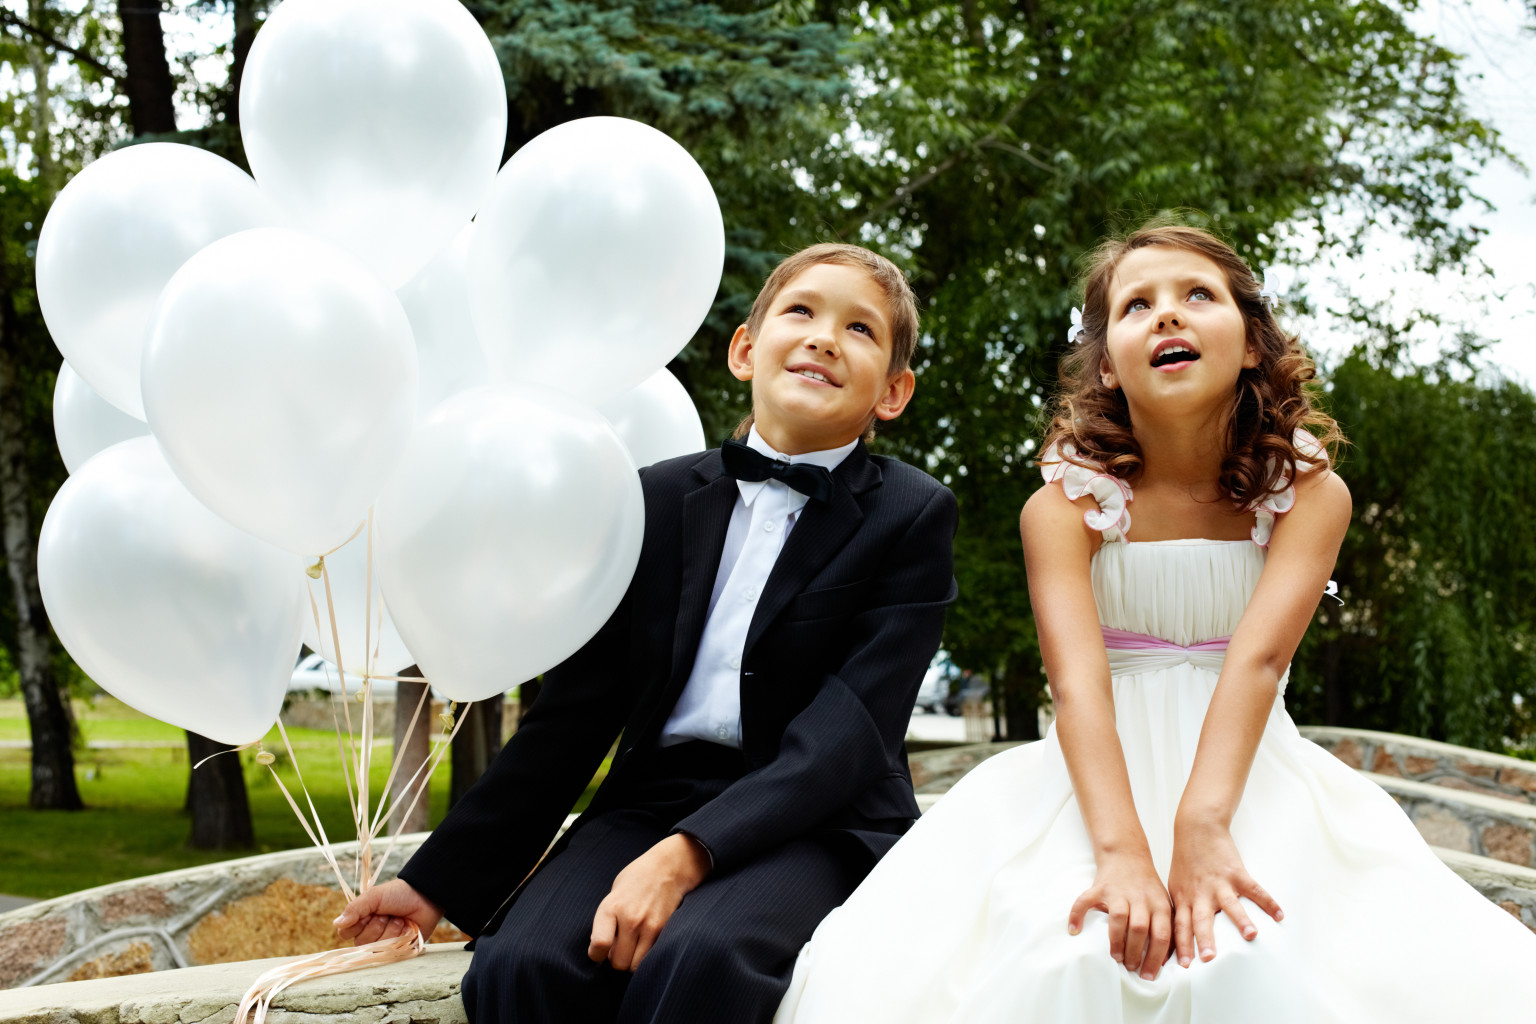 kids-wedding3